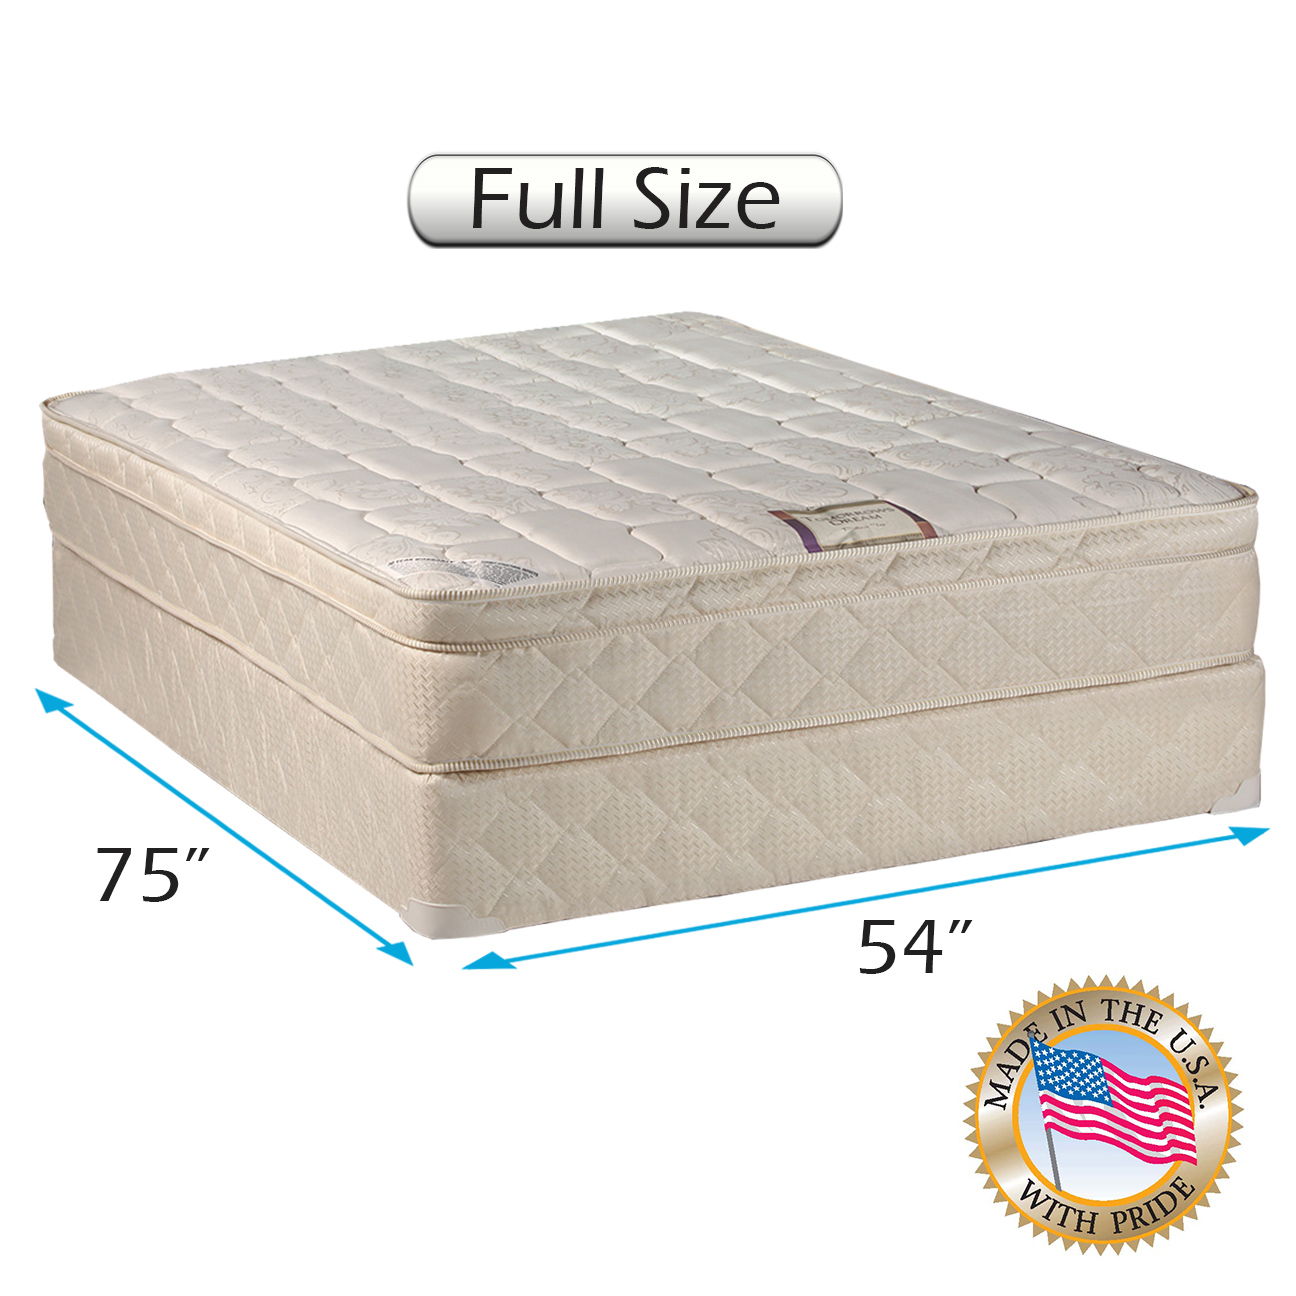 Dream World Inner Spring Pillowtop (Eurotop) Mattress set Bed Frame Included Full Size - Medium Soft, Fully assembled, Orthopedic, Good for your back, Superior Quality by Dream Solutions USA